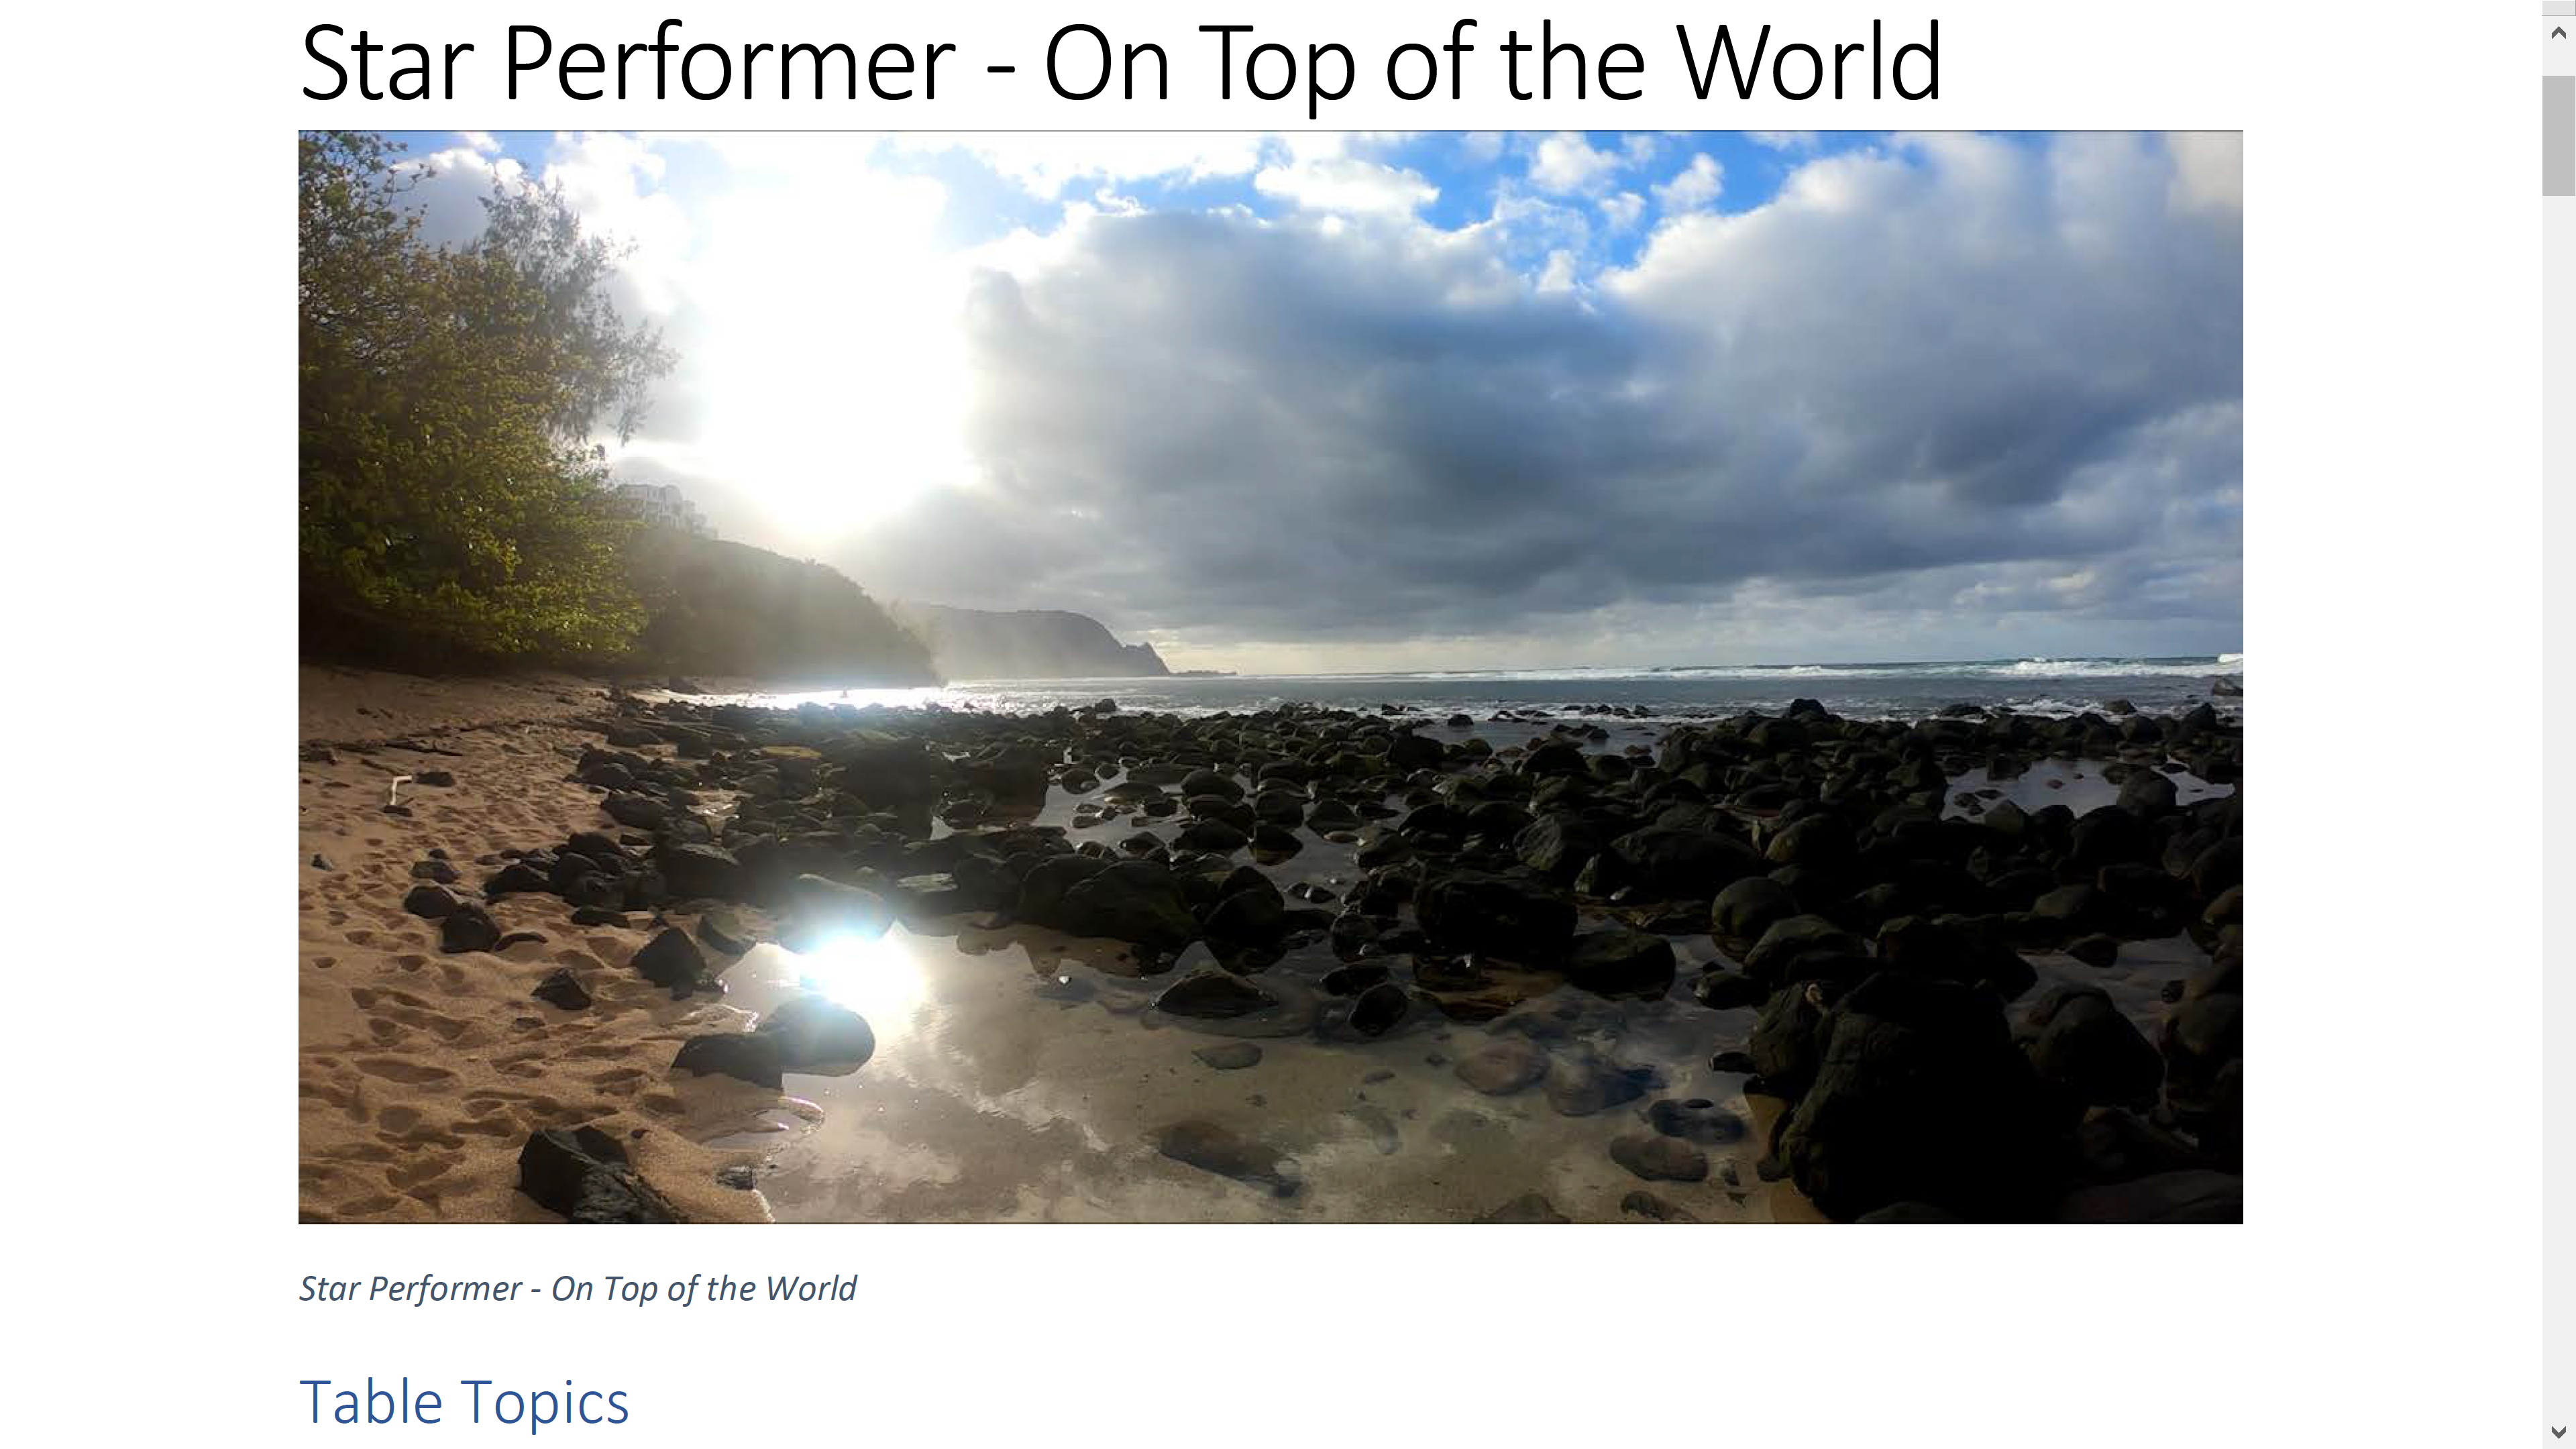 Star Performer On Top of the World Table Topics. Copyright by Steve J Davis. All Rights Reserved. https://starperformer.info